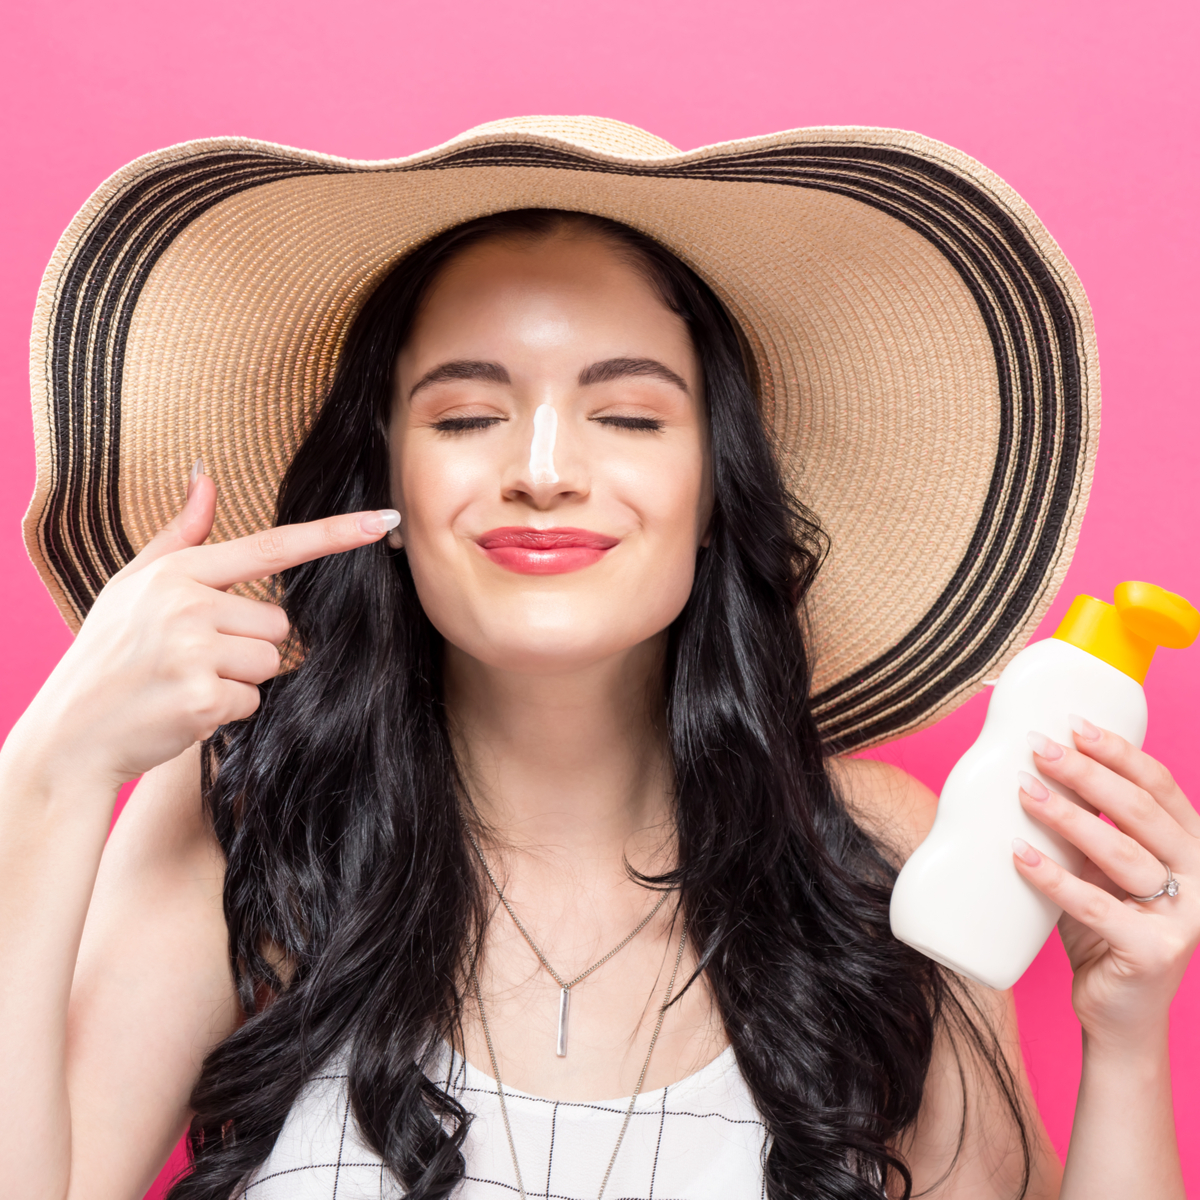 Anti-Aging Skincare In Your 20's: The Right Time To Start